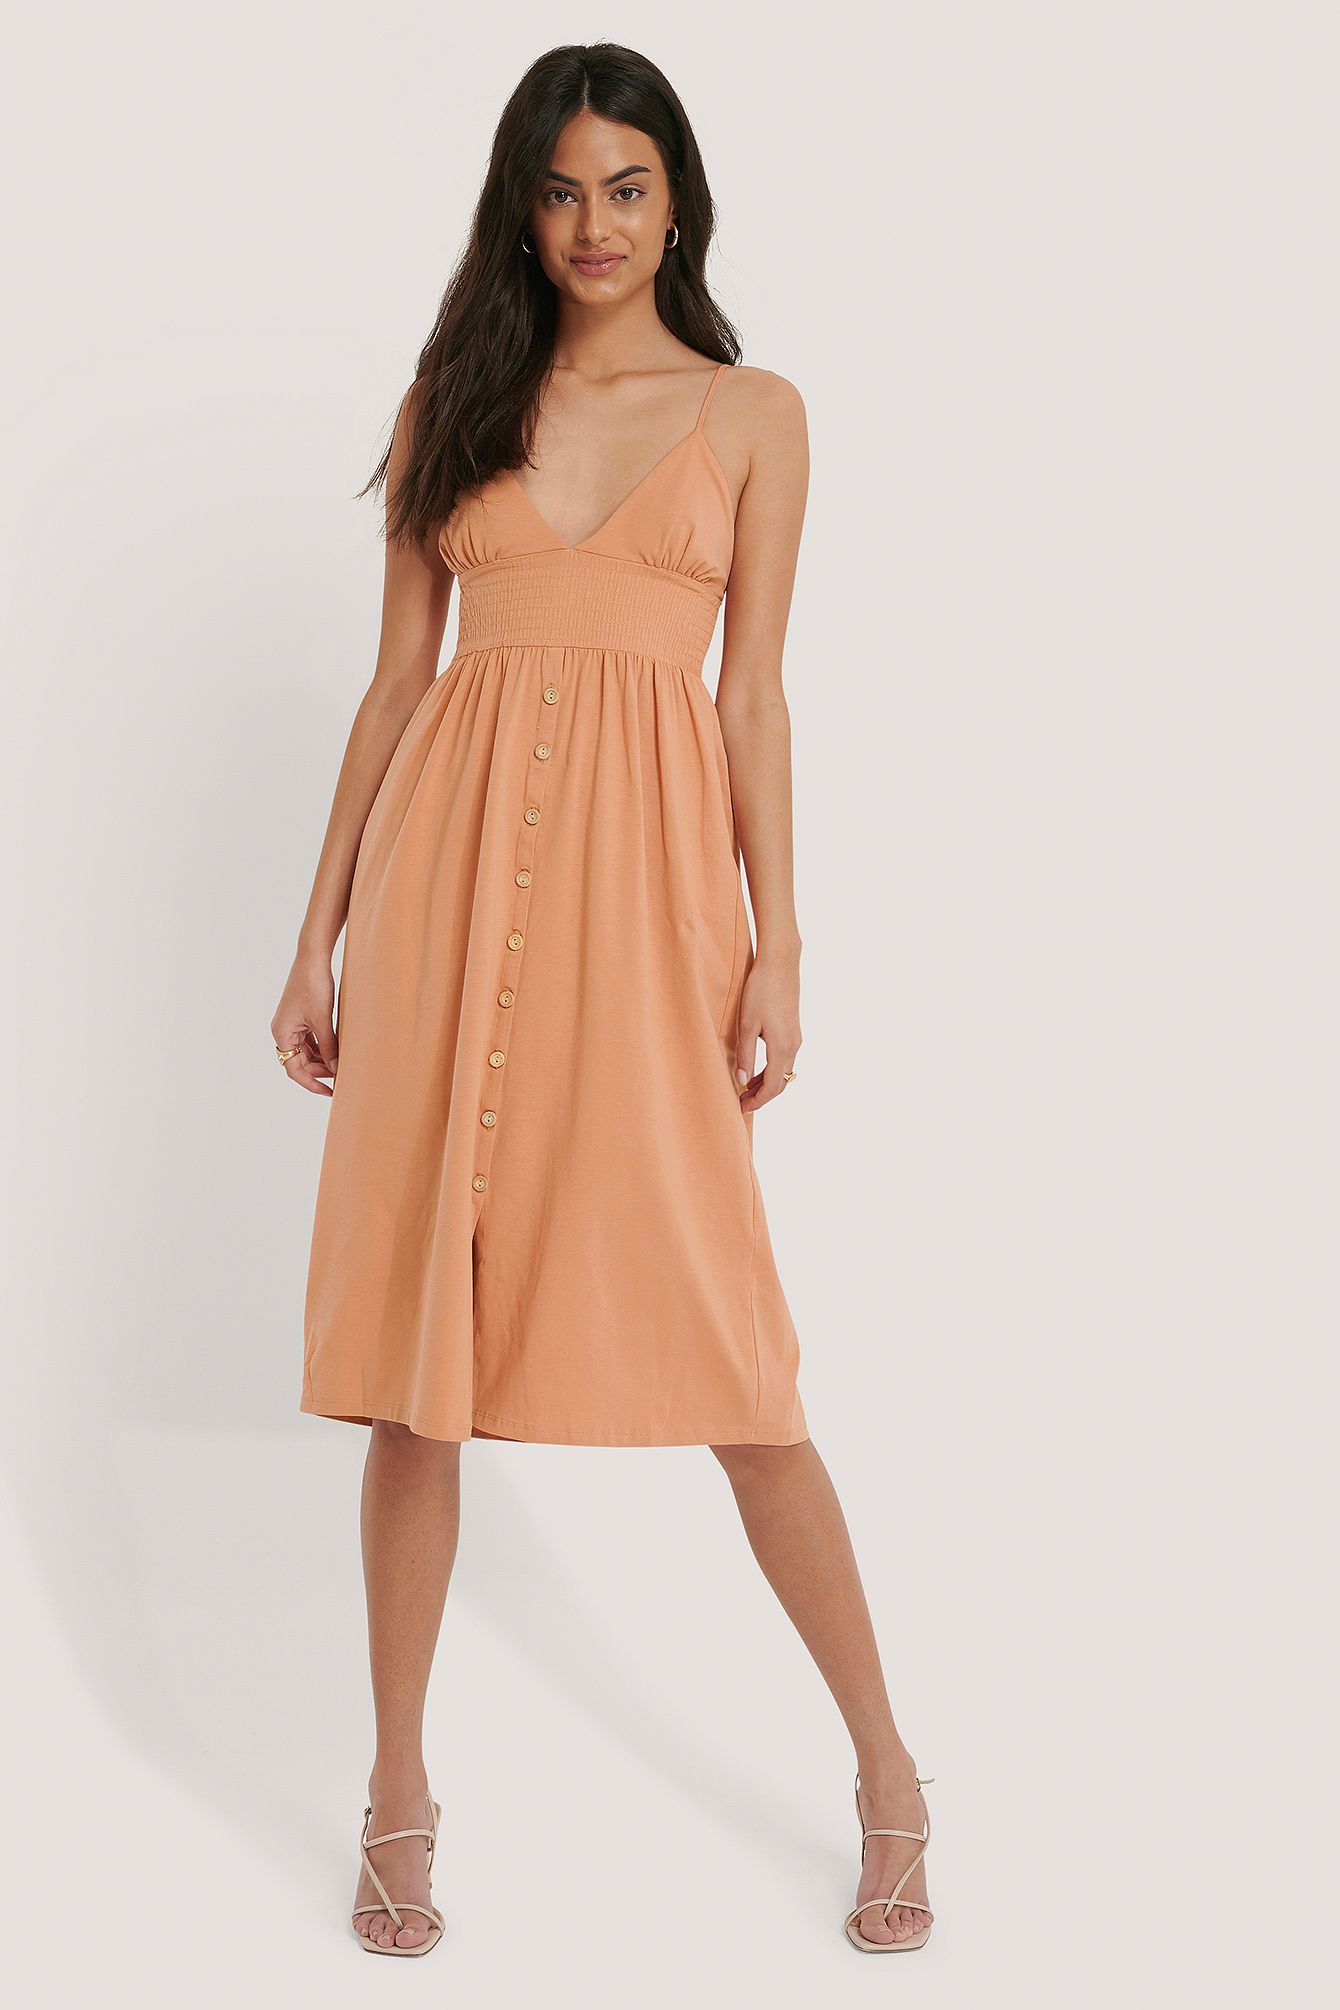 Salmon Button Detailed Cotton Dress